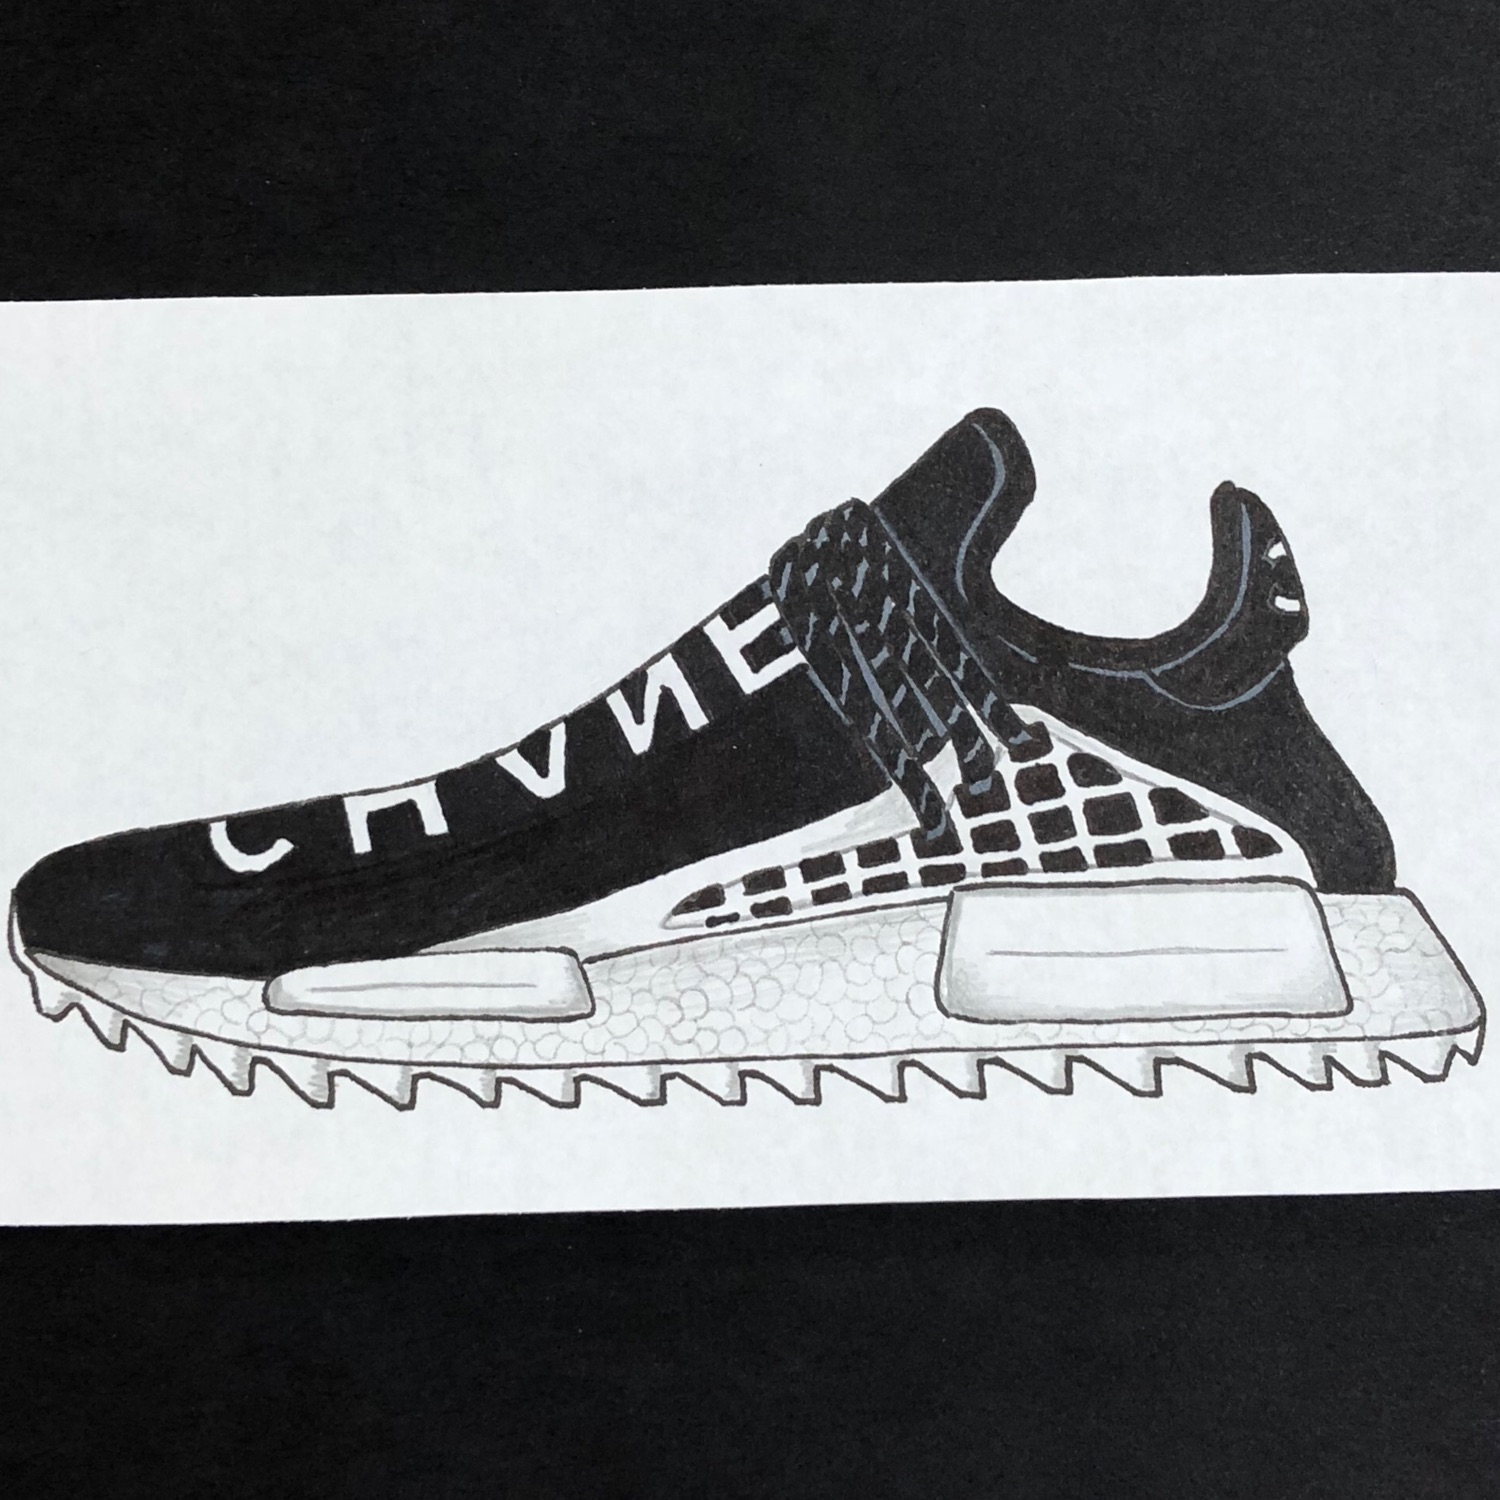 wholesale dealer 649fe 802e7 Adidas X Pharrell Human Race Nmd Chanel Art